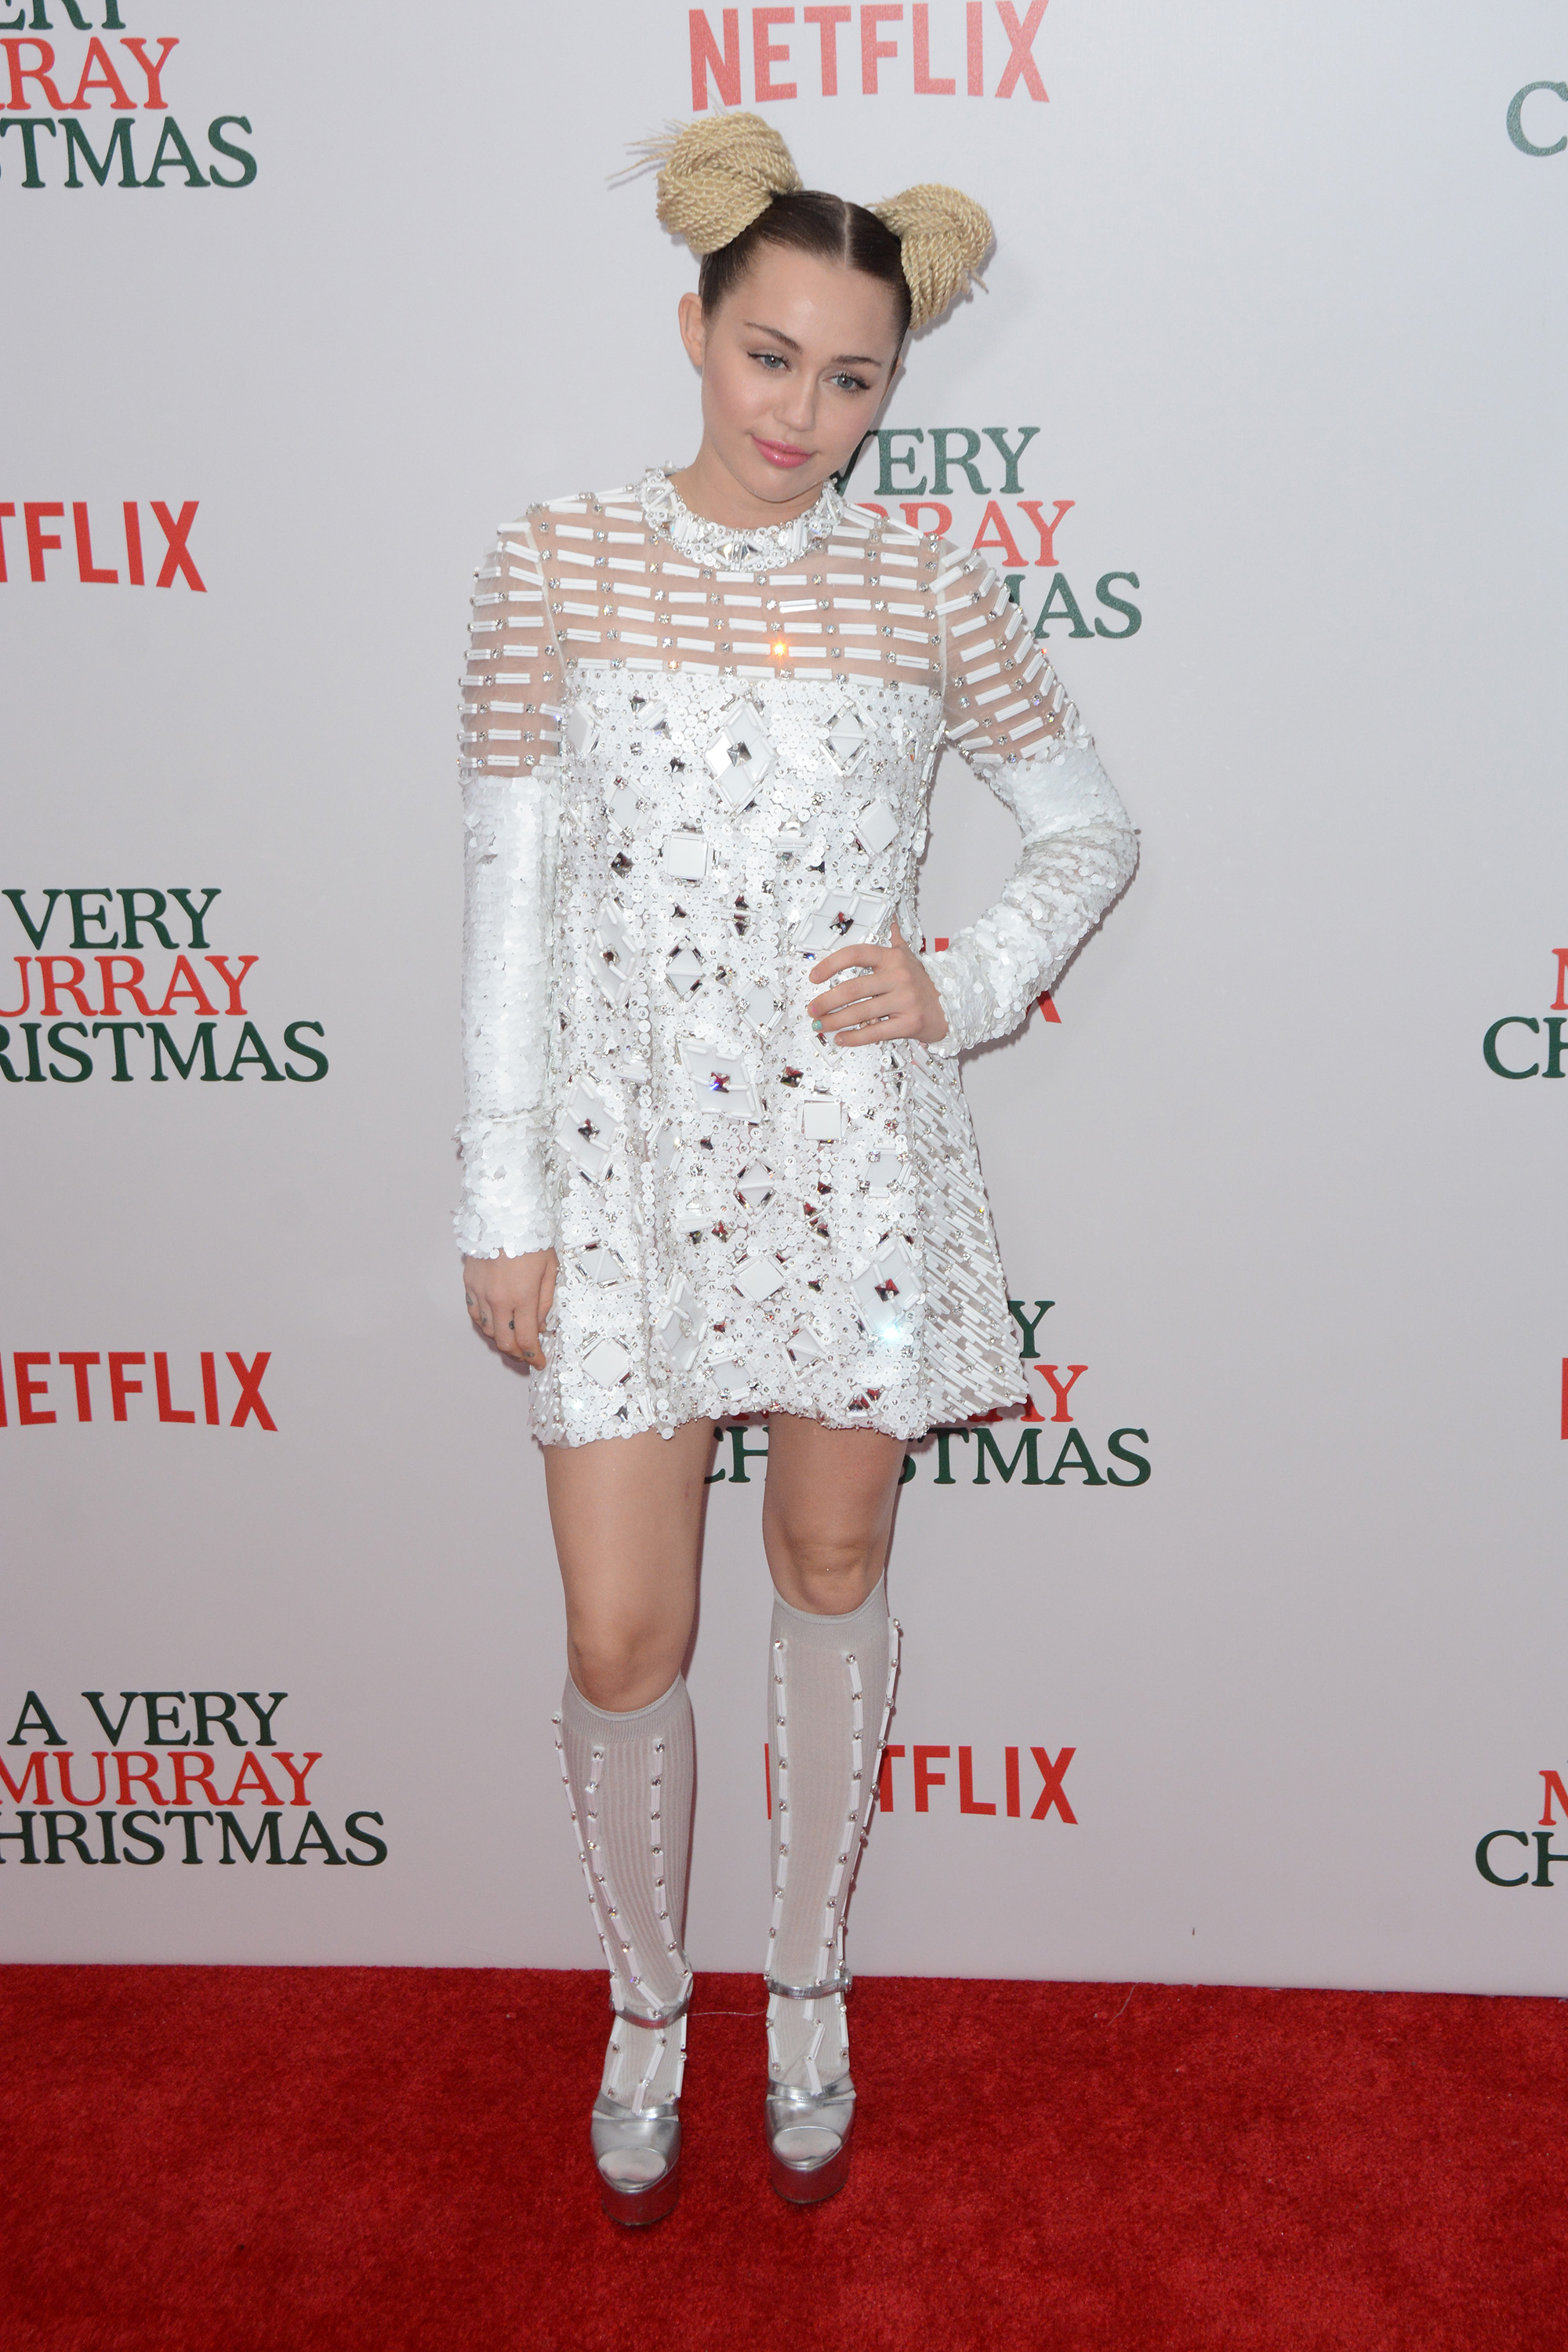 """A Very Murray Christmas"" New York Premiere - Red Carpet Arrivals  Featuring: Miley Cyrus Where: New York, New York, United States When: 03 Dec 2015 Credit: Ivan Nikolov/WENN.com"